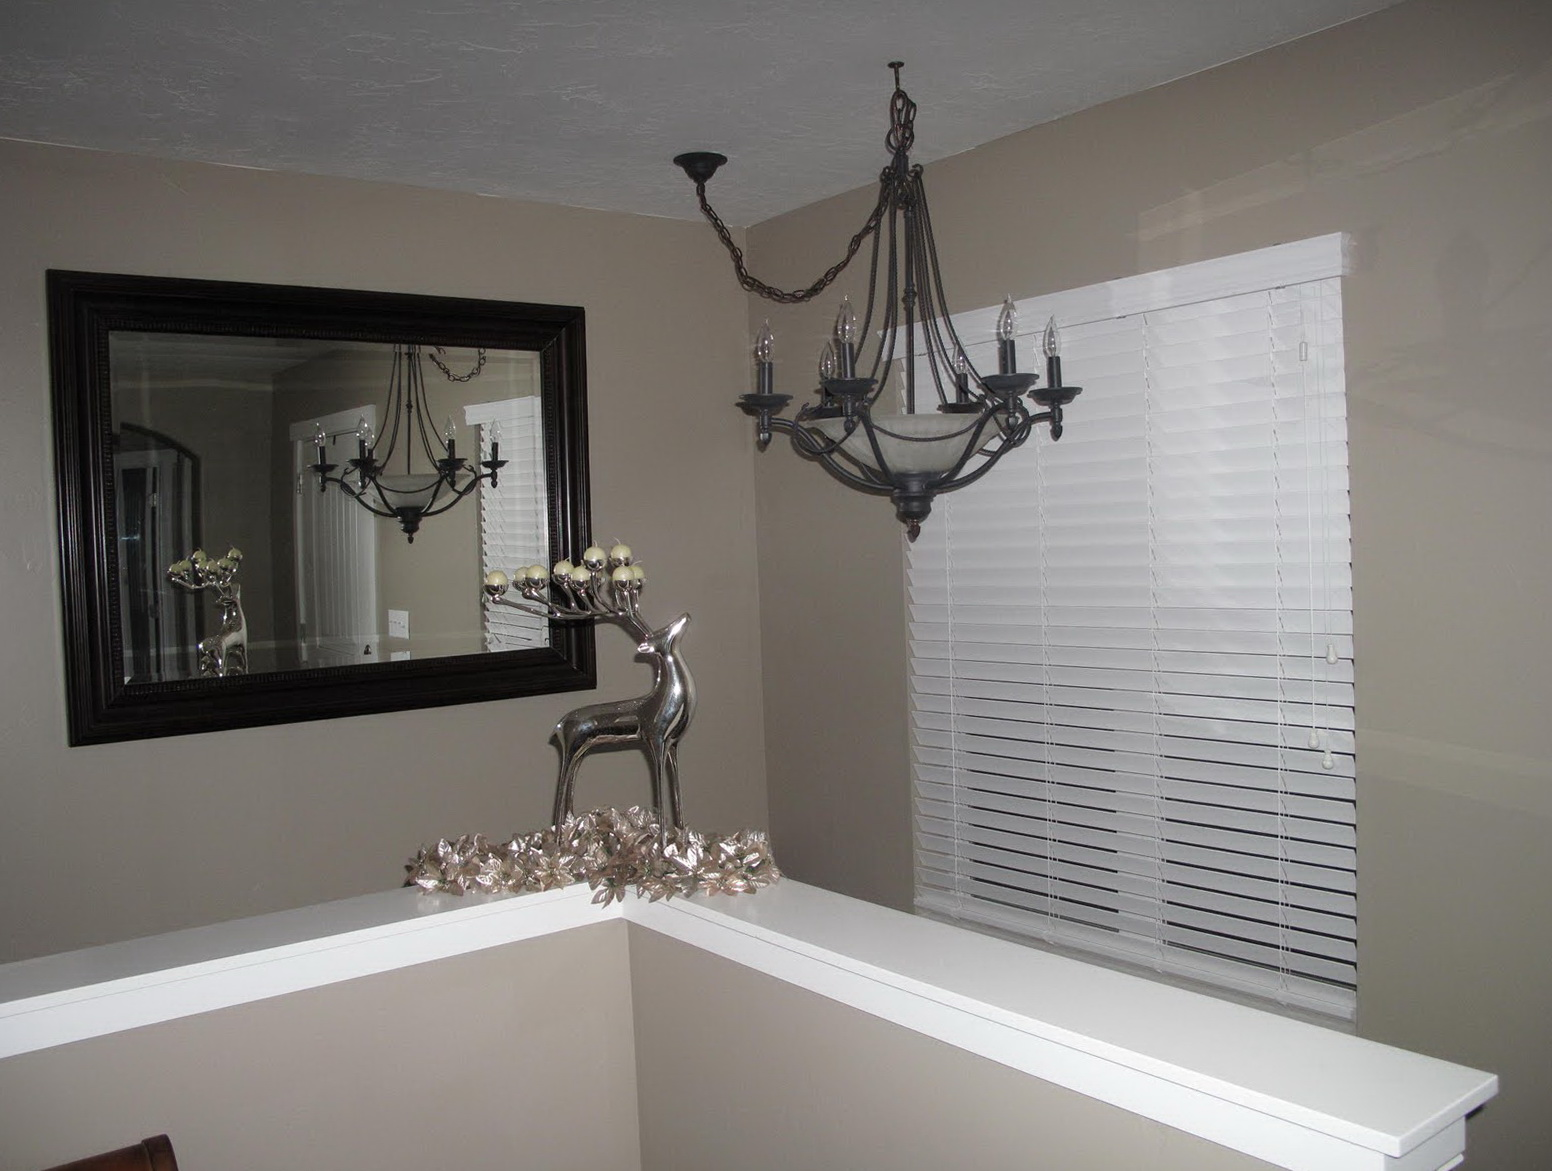 Hanging a chandelier with hook home design ideas hanging a chandelier with hook aloadofball Gallery